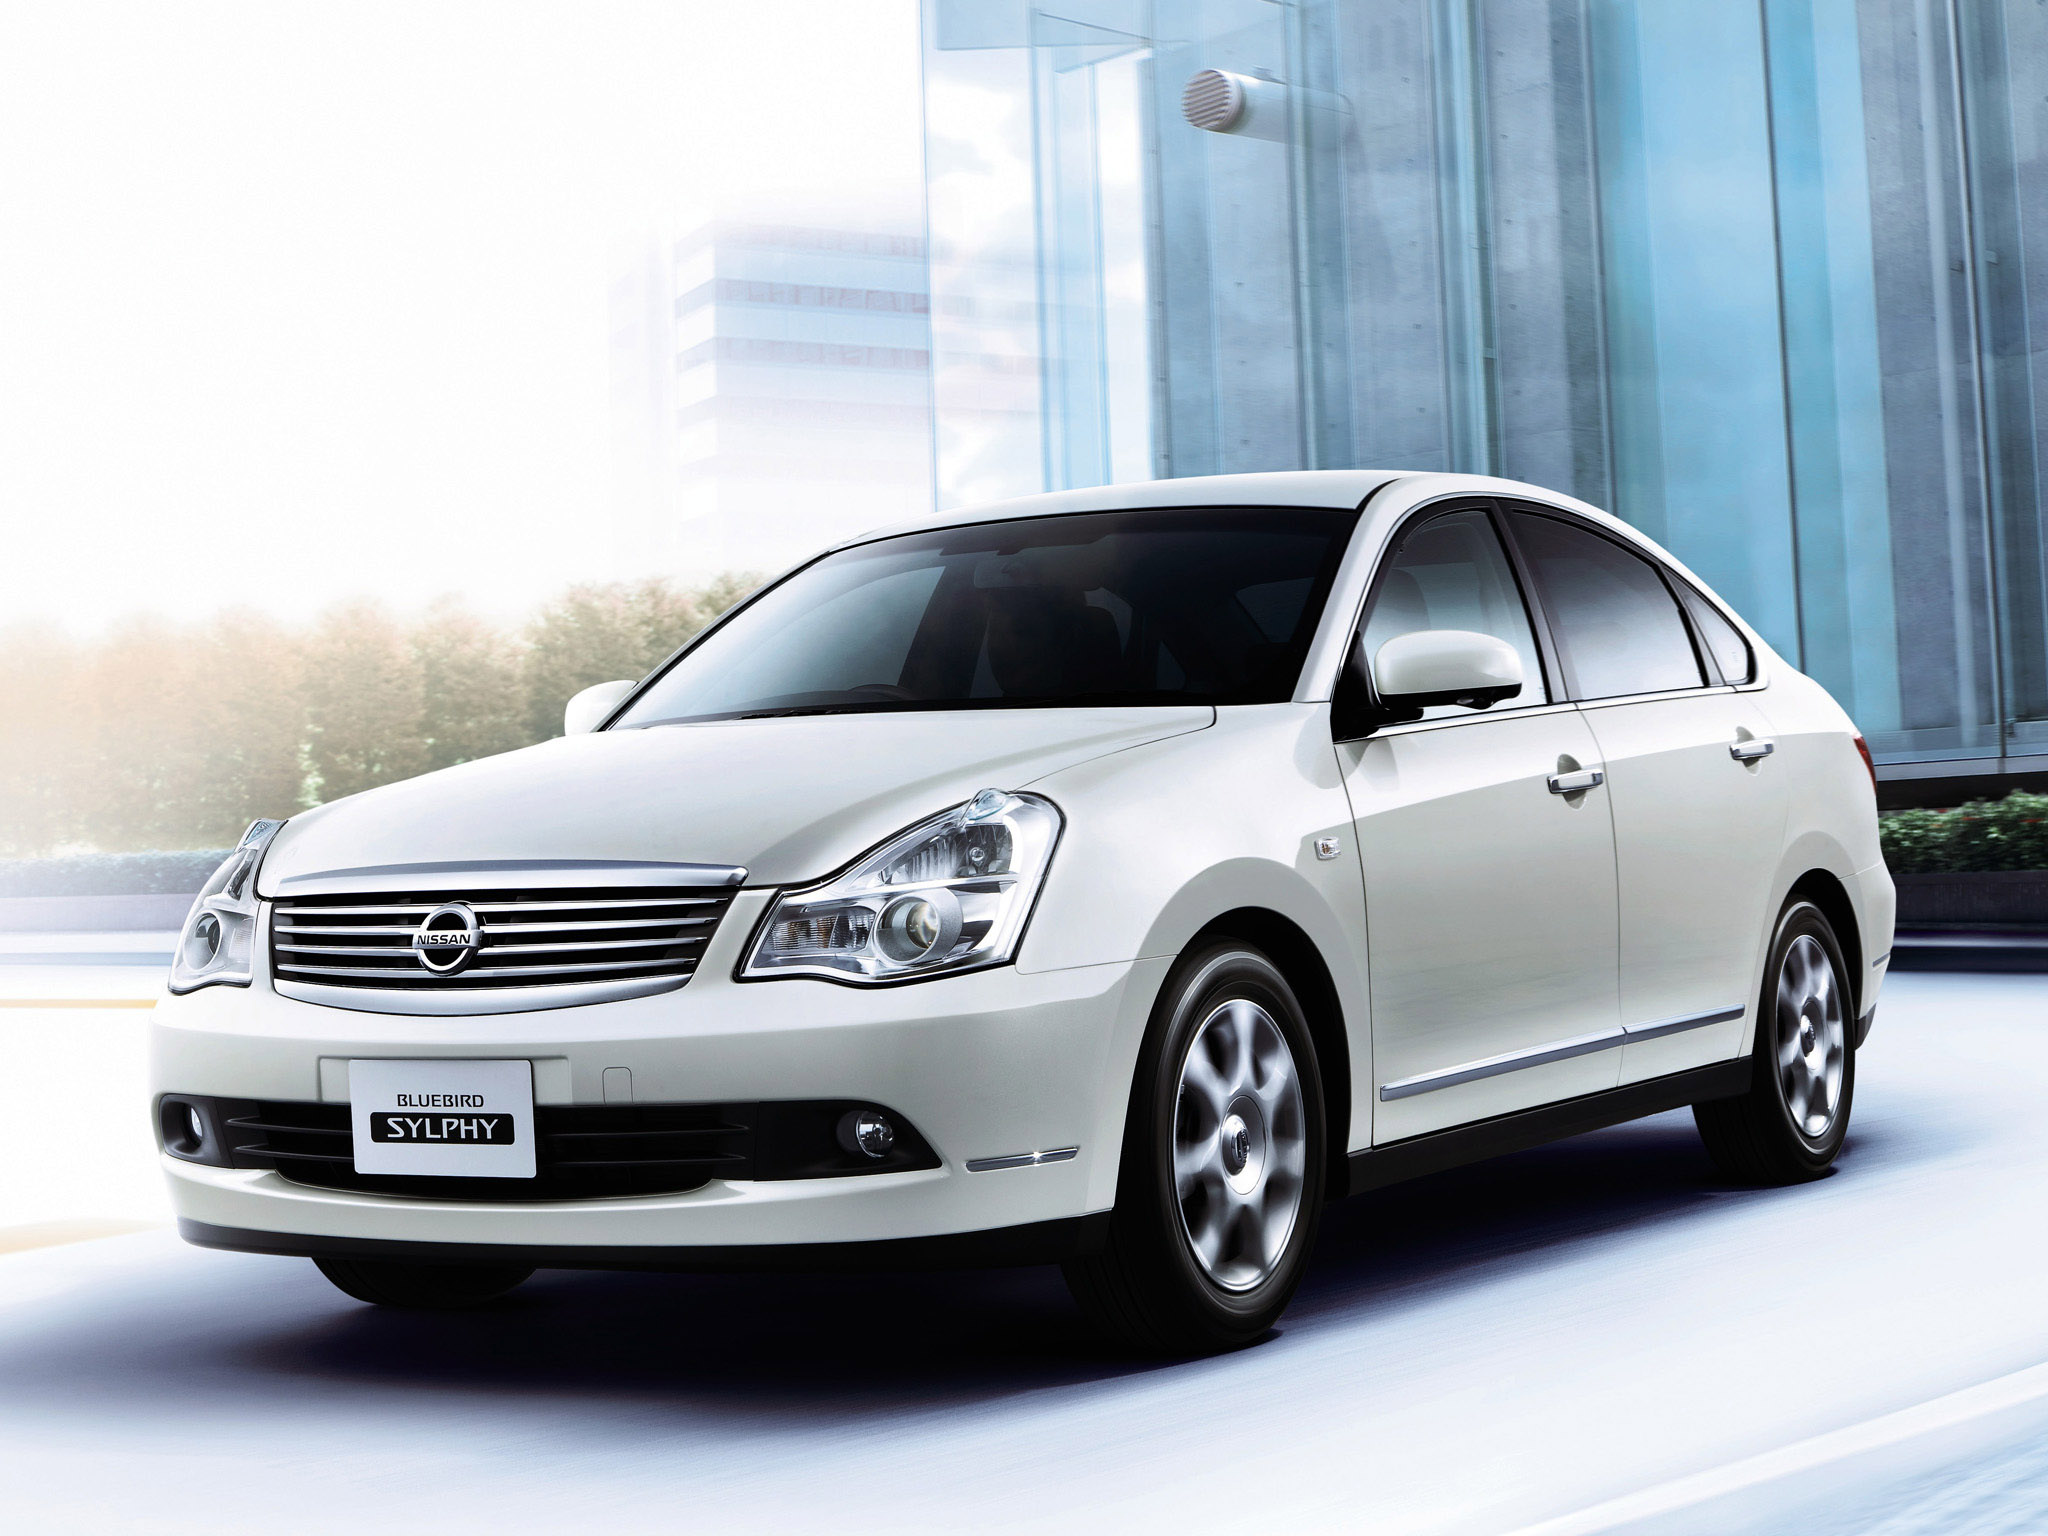 Nissan Bluebird Sylphy: 08 photo